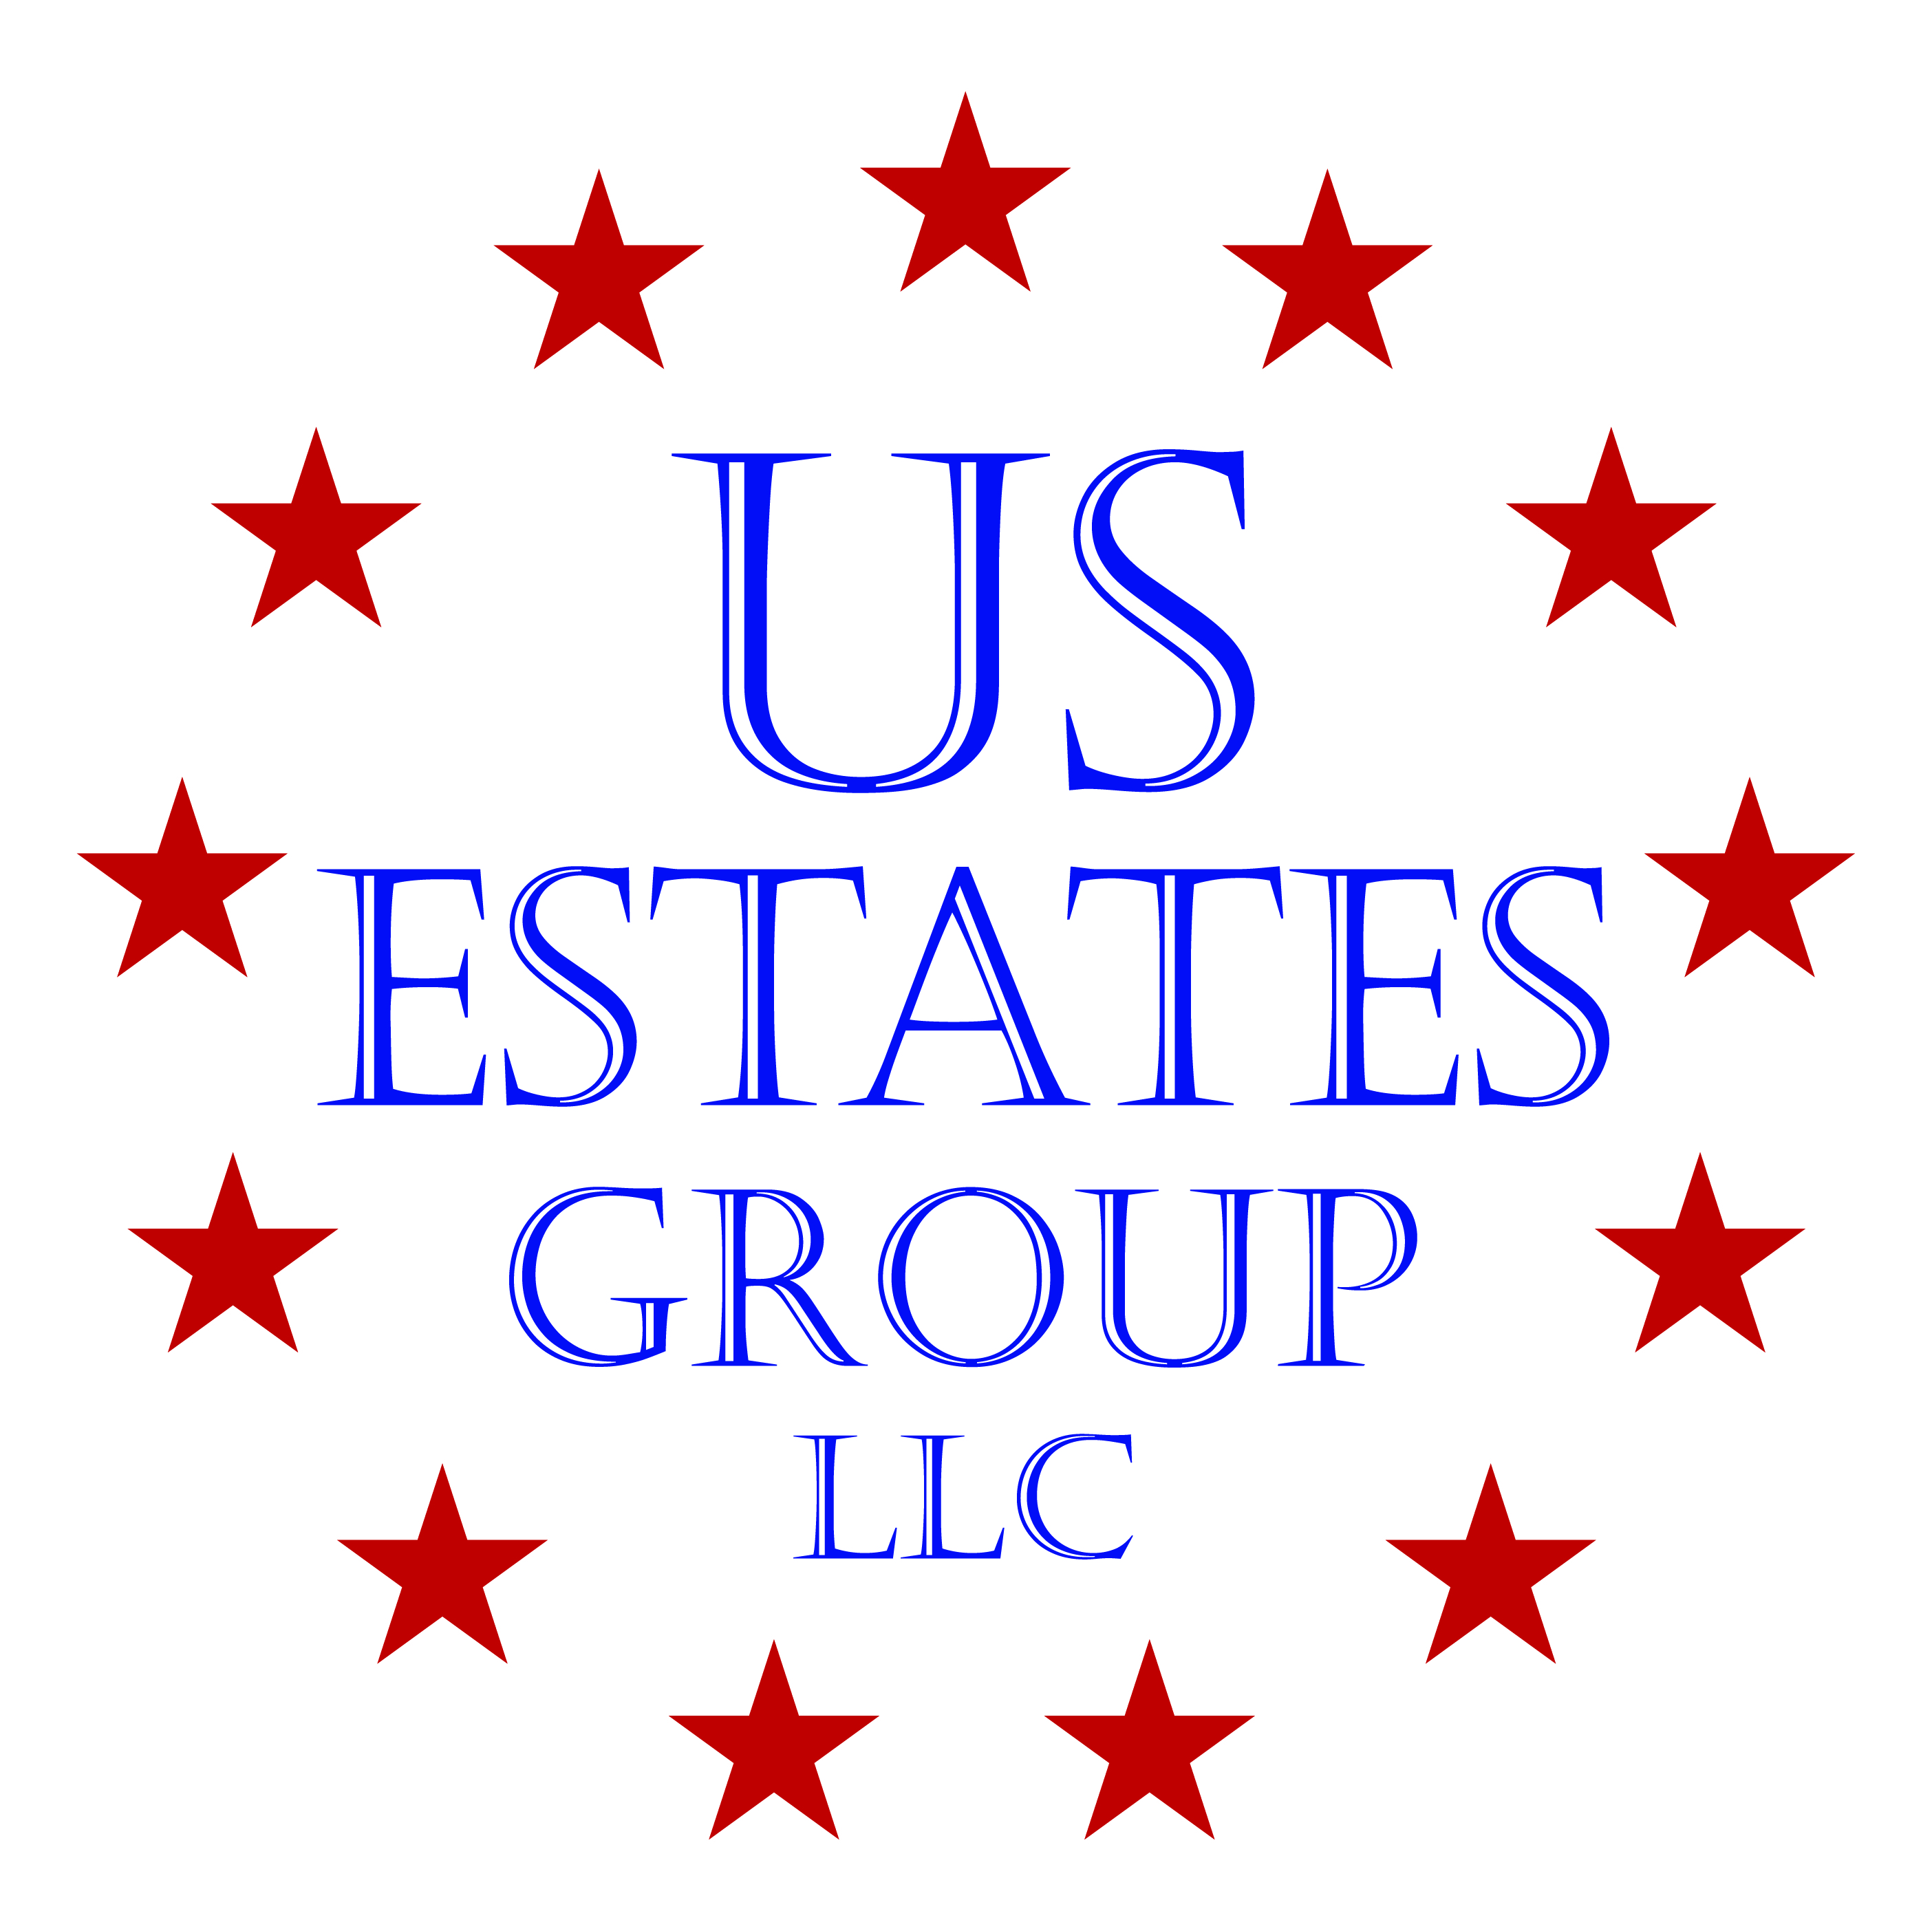 US Estates Group, LLC